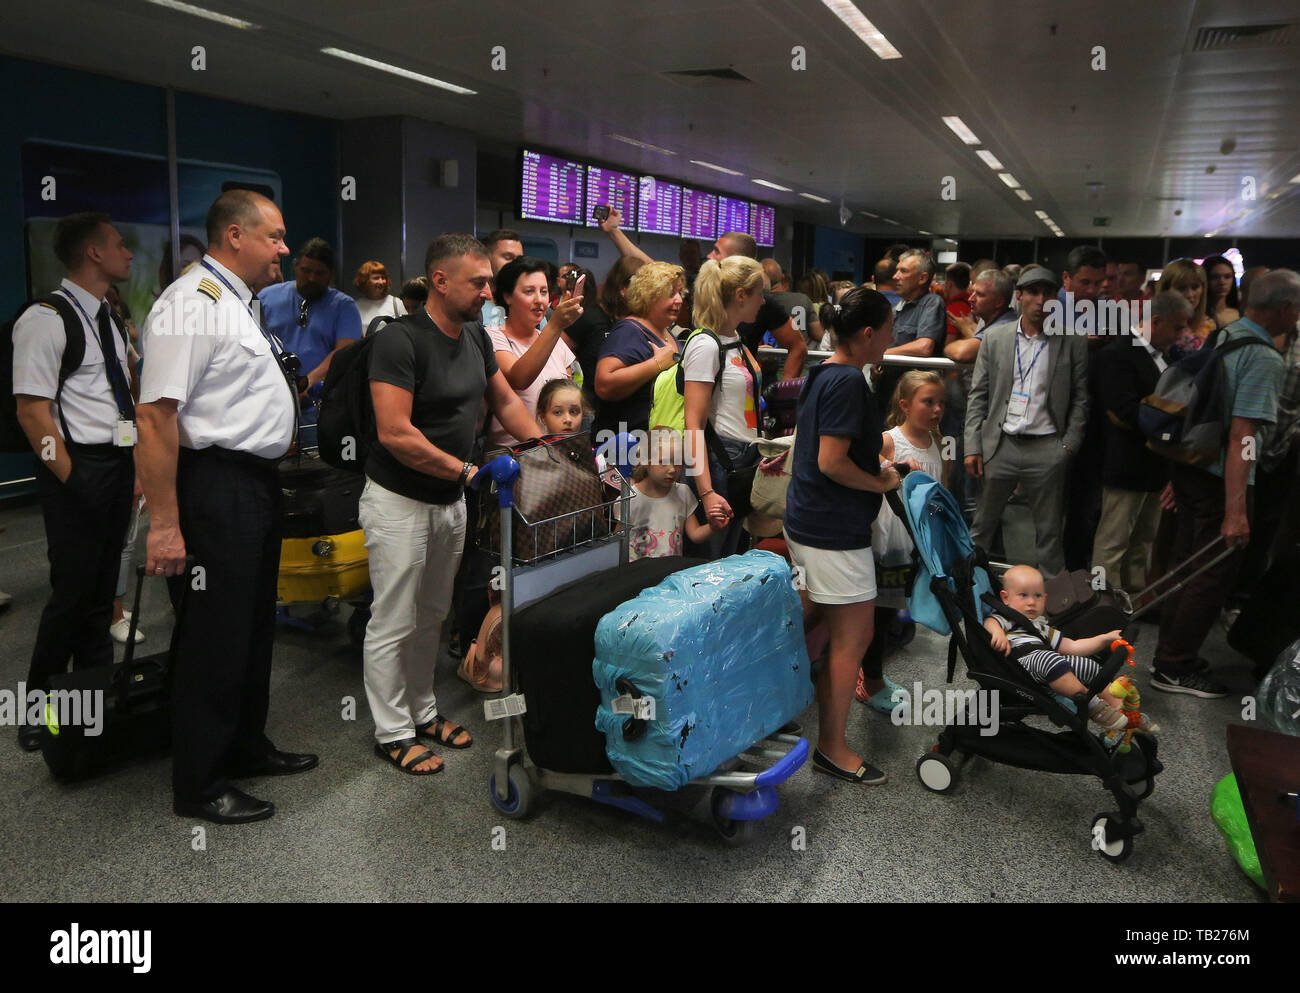 May 29, 2019 - Passengers try to walk through the crowd of supporters who came to greet Mikheil Saakashvili as he arrives at Boryspil International Airport near Kyiv, Ukraine, May 29, 2019. Ukraine's new president has restored the citizenship of former Georgian president Mikheil Saakashvili almost two years after it was removed. (Credit Image: © Sergii KharchenkoZUMA Wire) - Stock Image